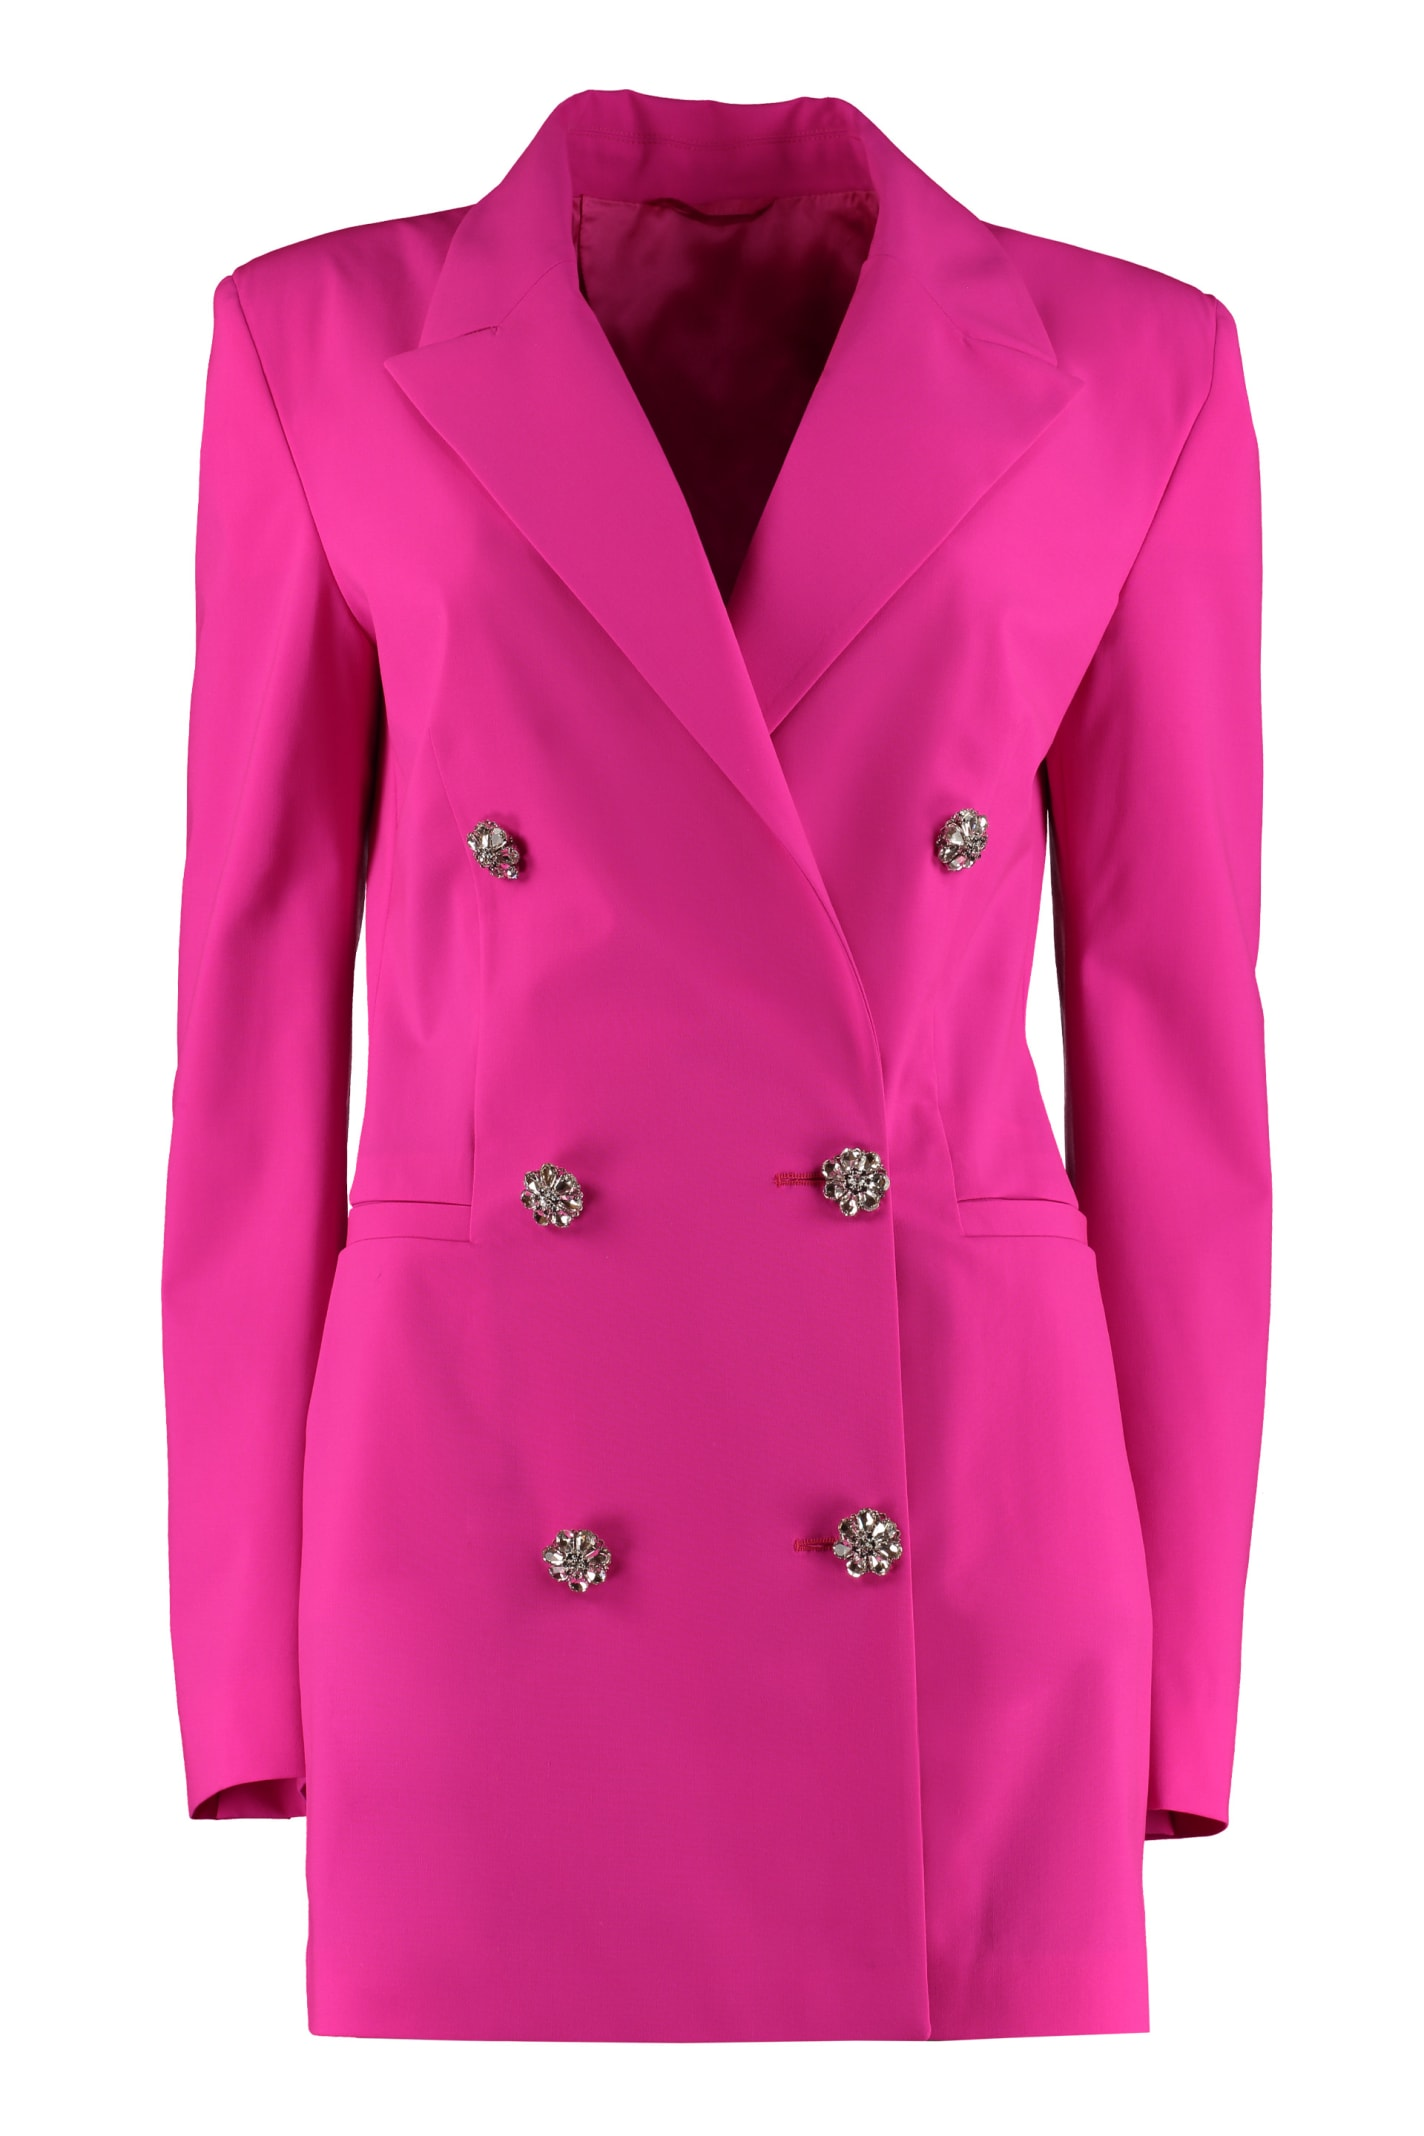 The Attico Embellished Button Blazer Dress